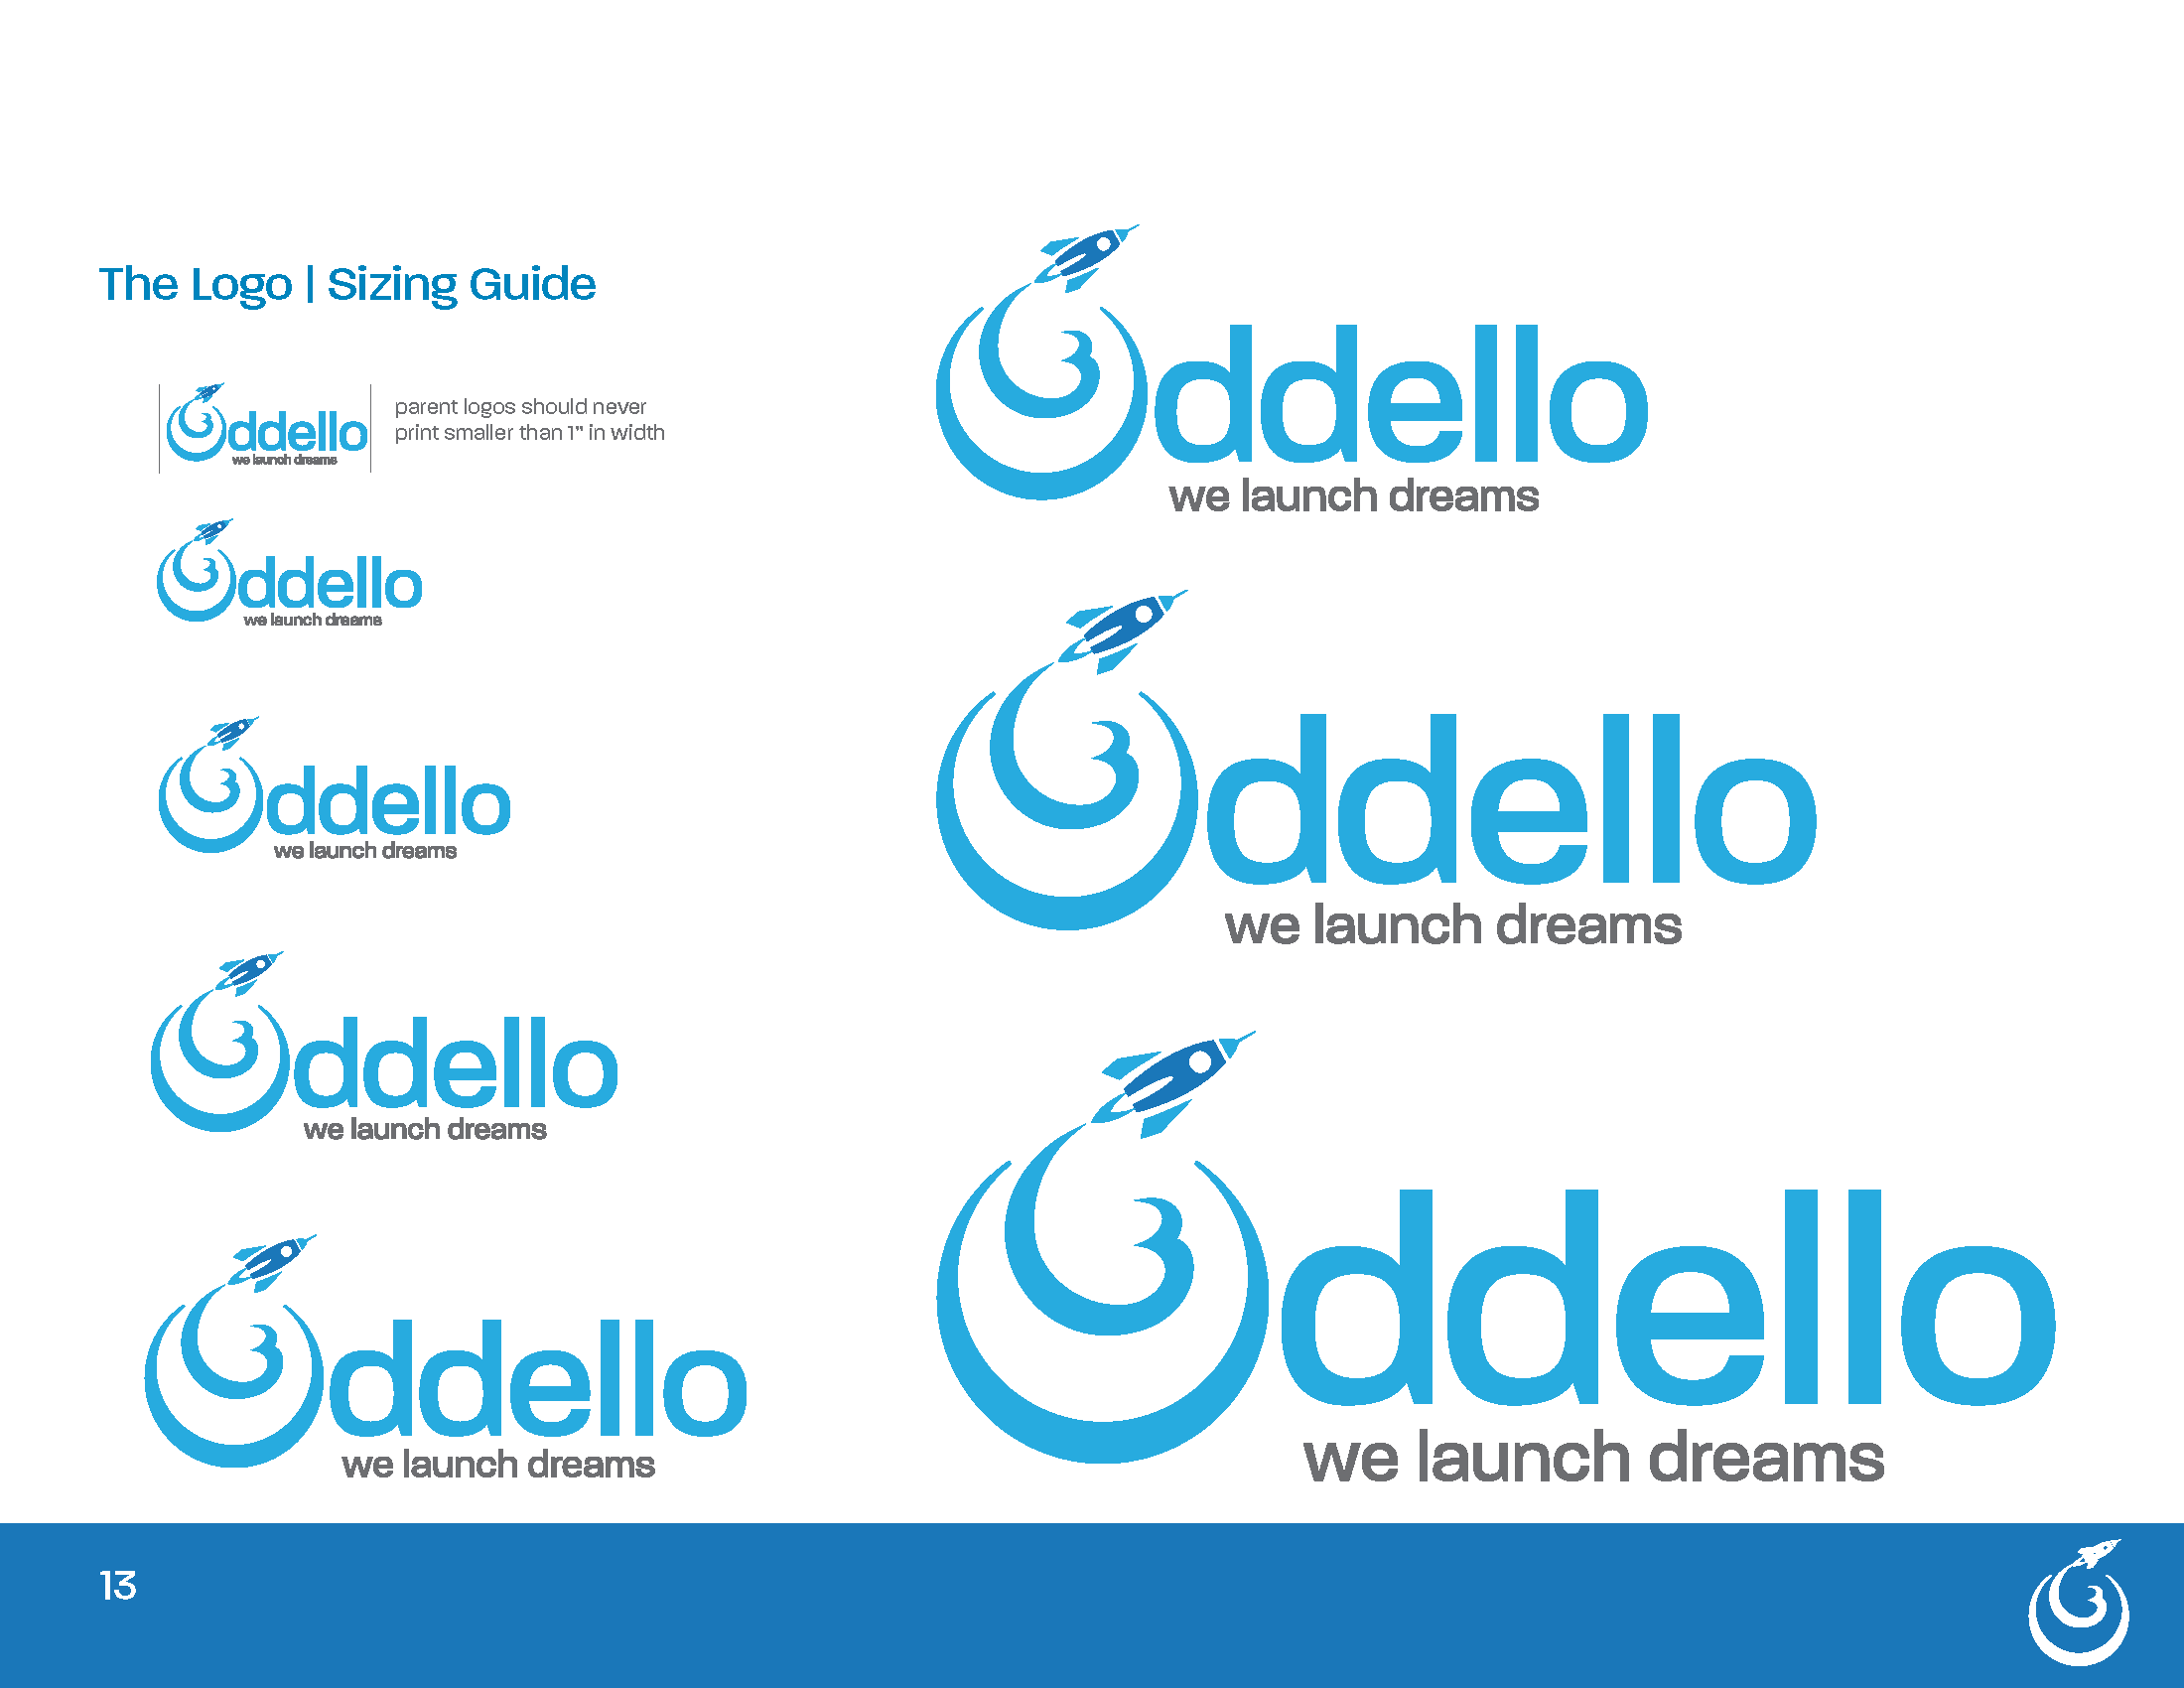 Oddello Brand Guide (1)_Page_4.png